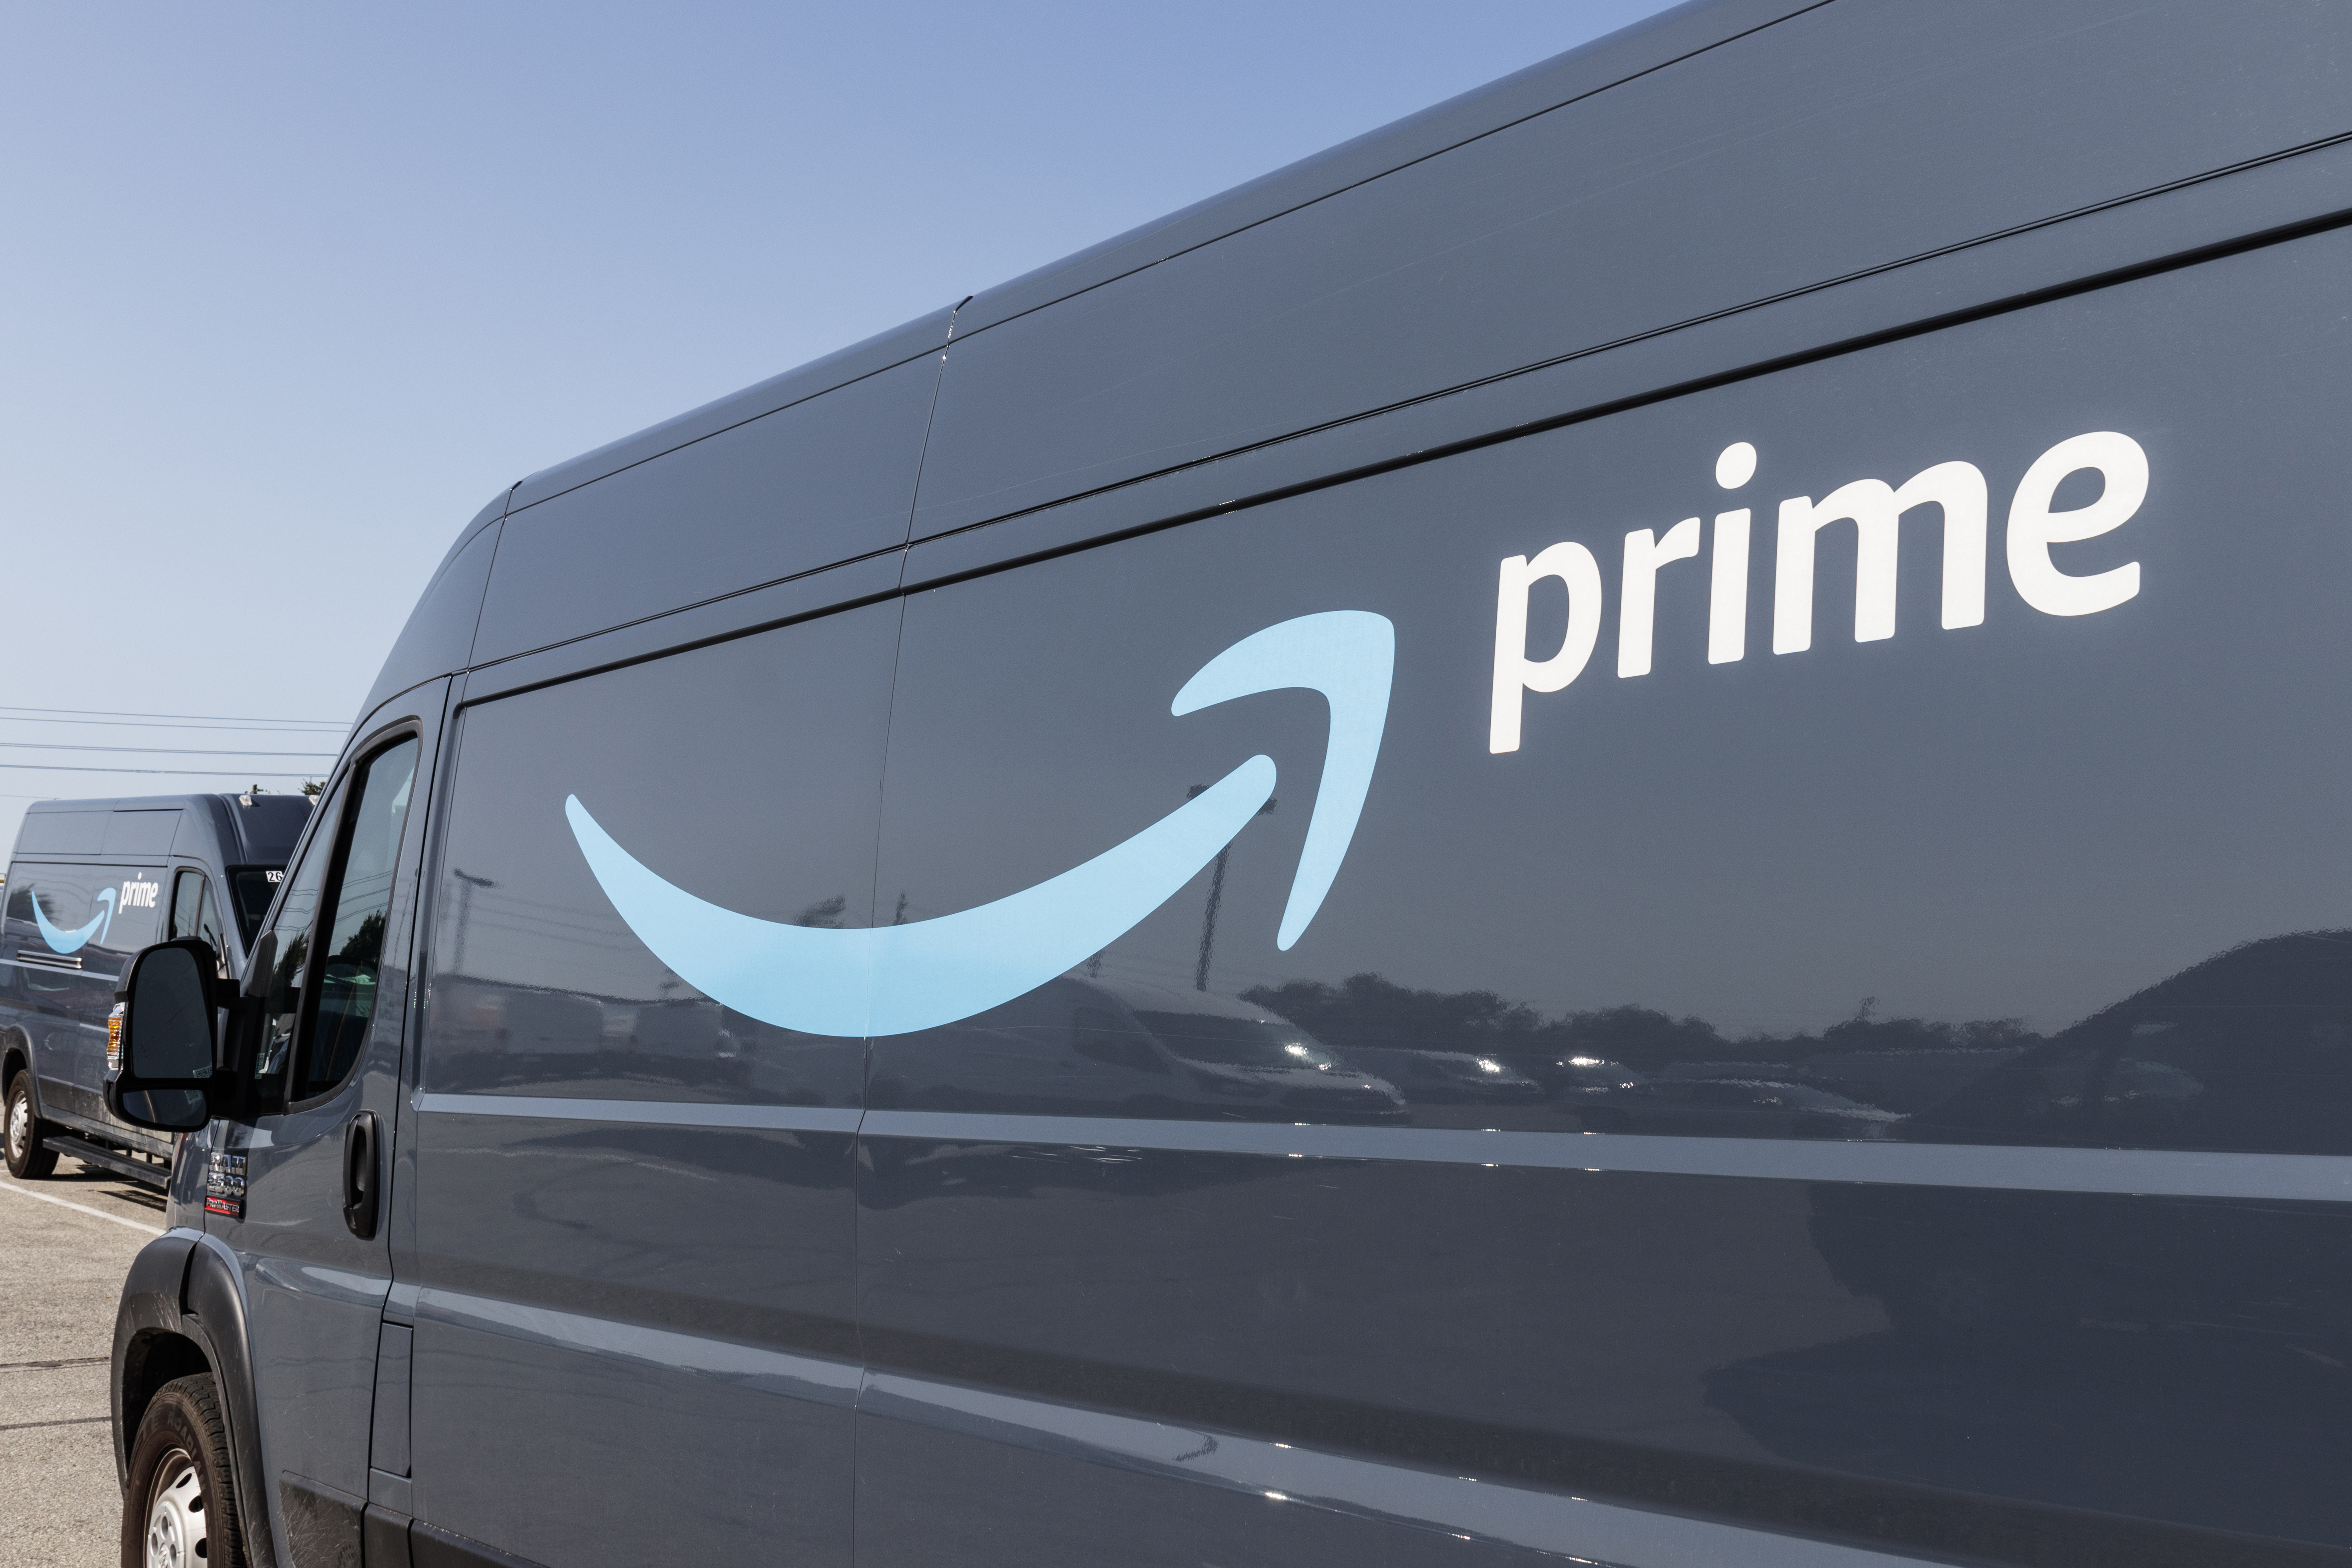 Amazon Prime Day kicks off on June 21st this year – Engadget